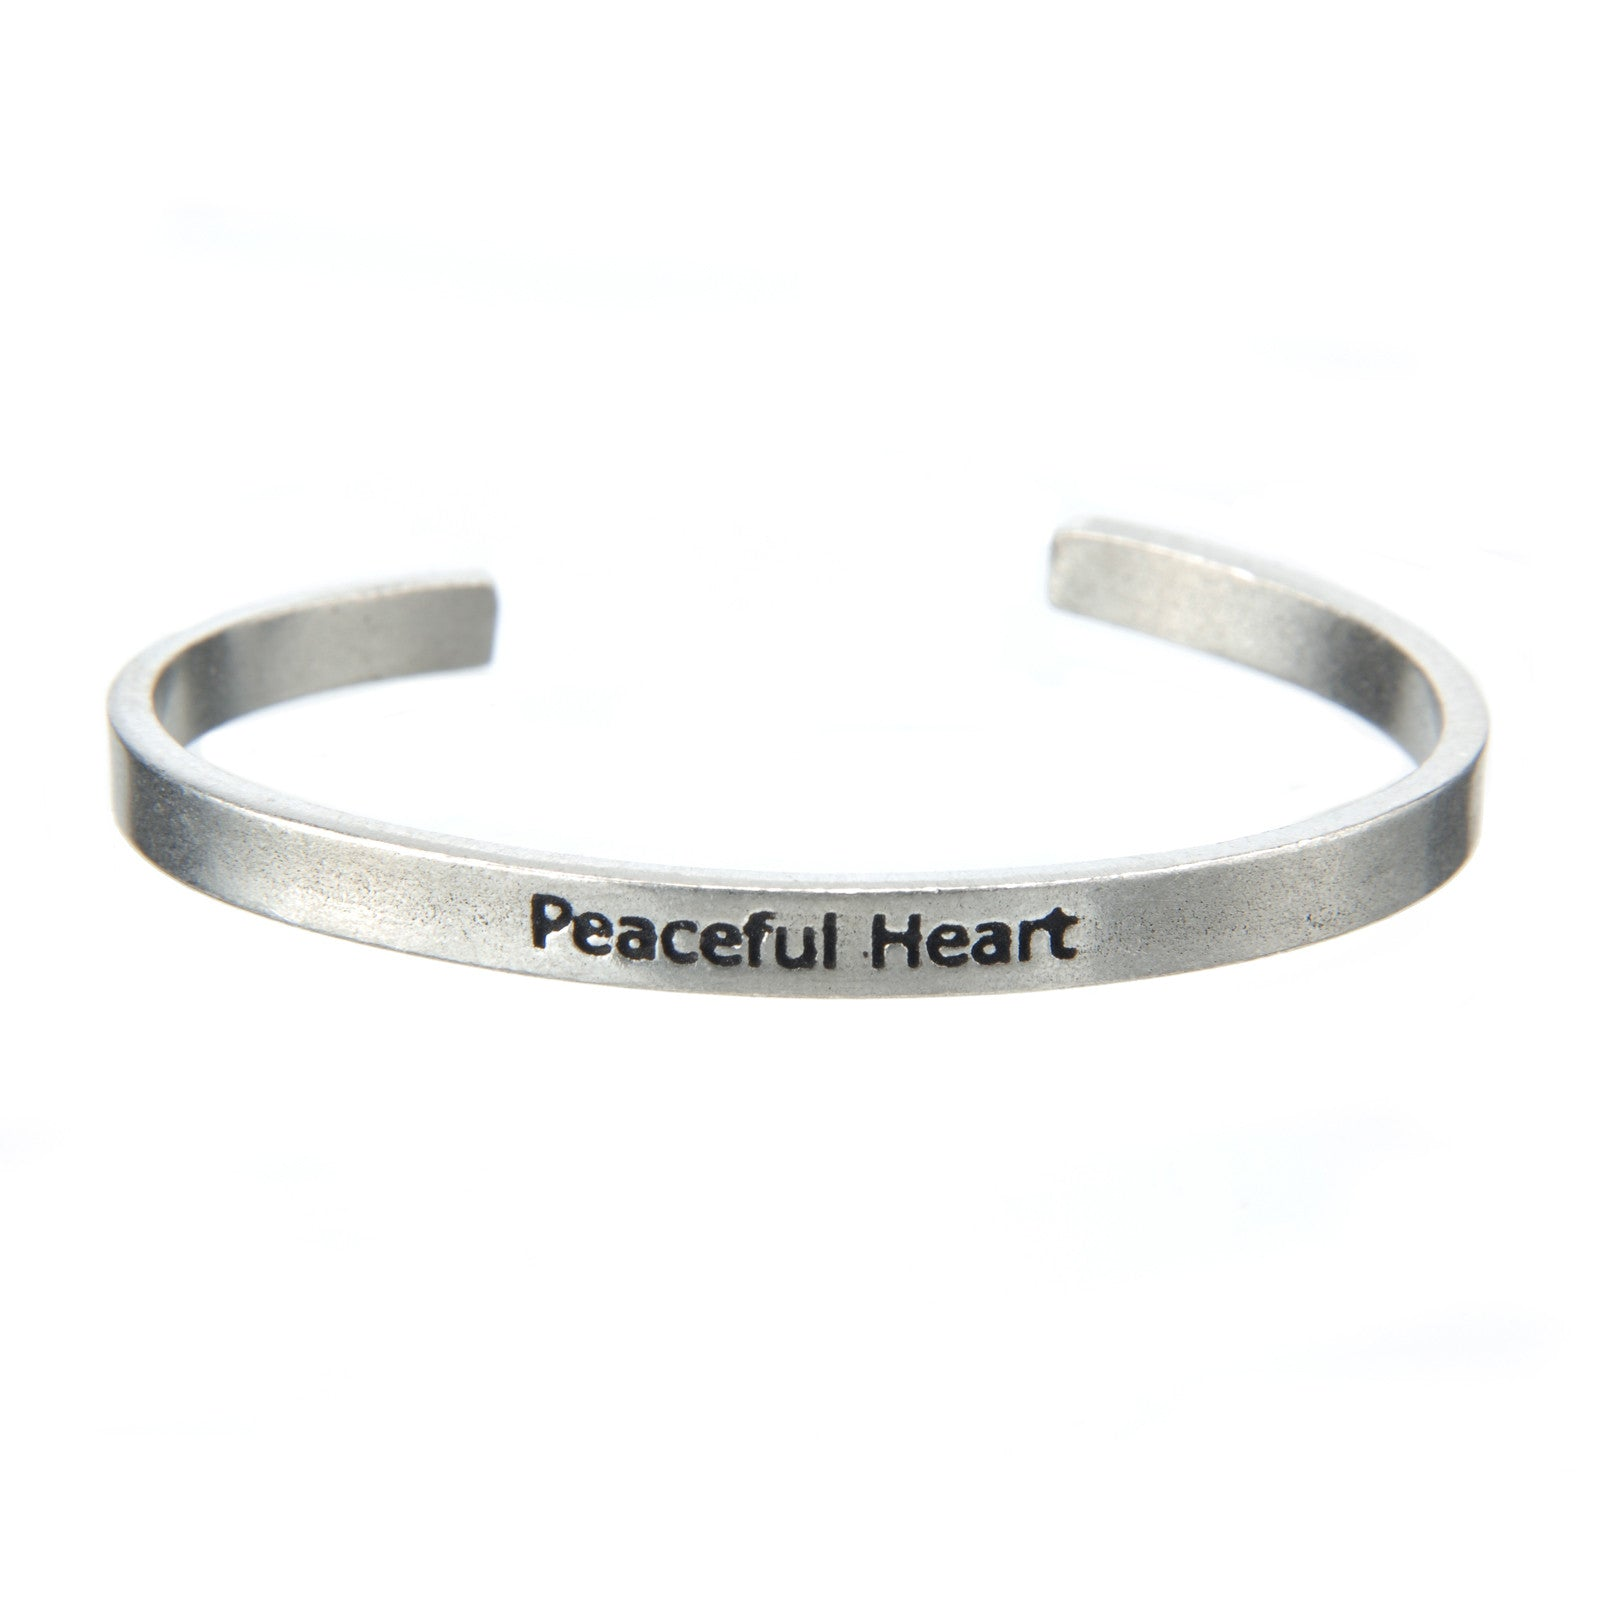 Peaceful Heart Quotable Cuff Bracelet - Whitney Howard Designs